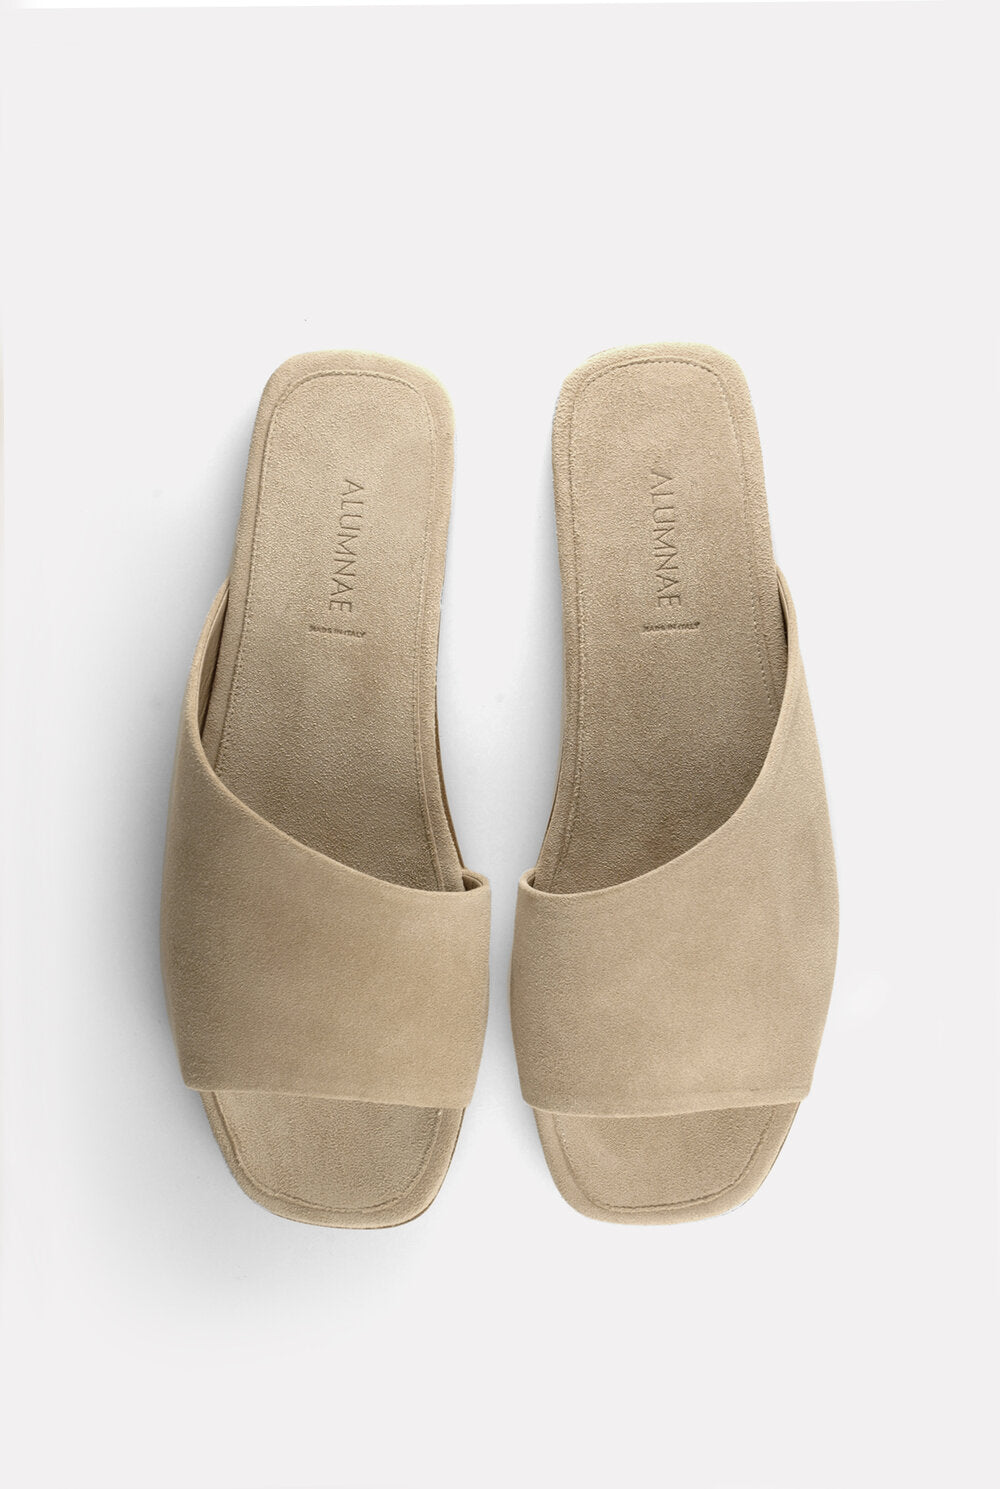 Asymmetrical Curved Slide Sand Suede.